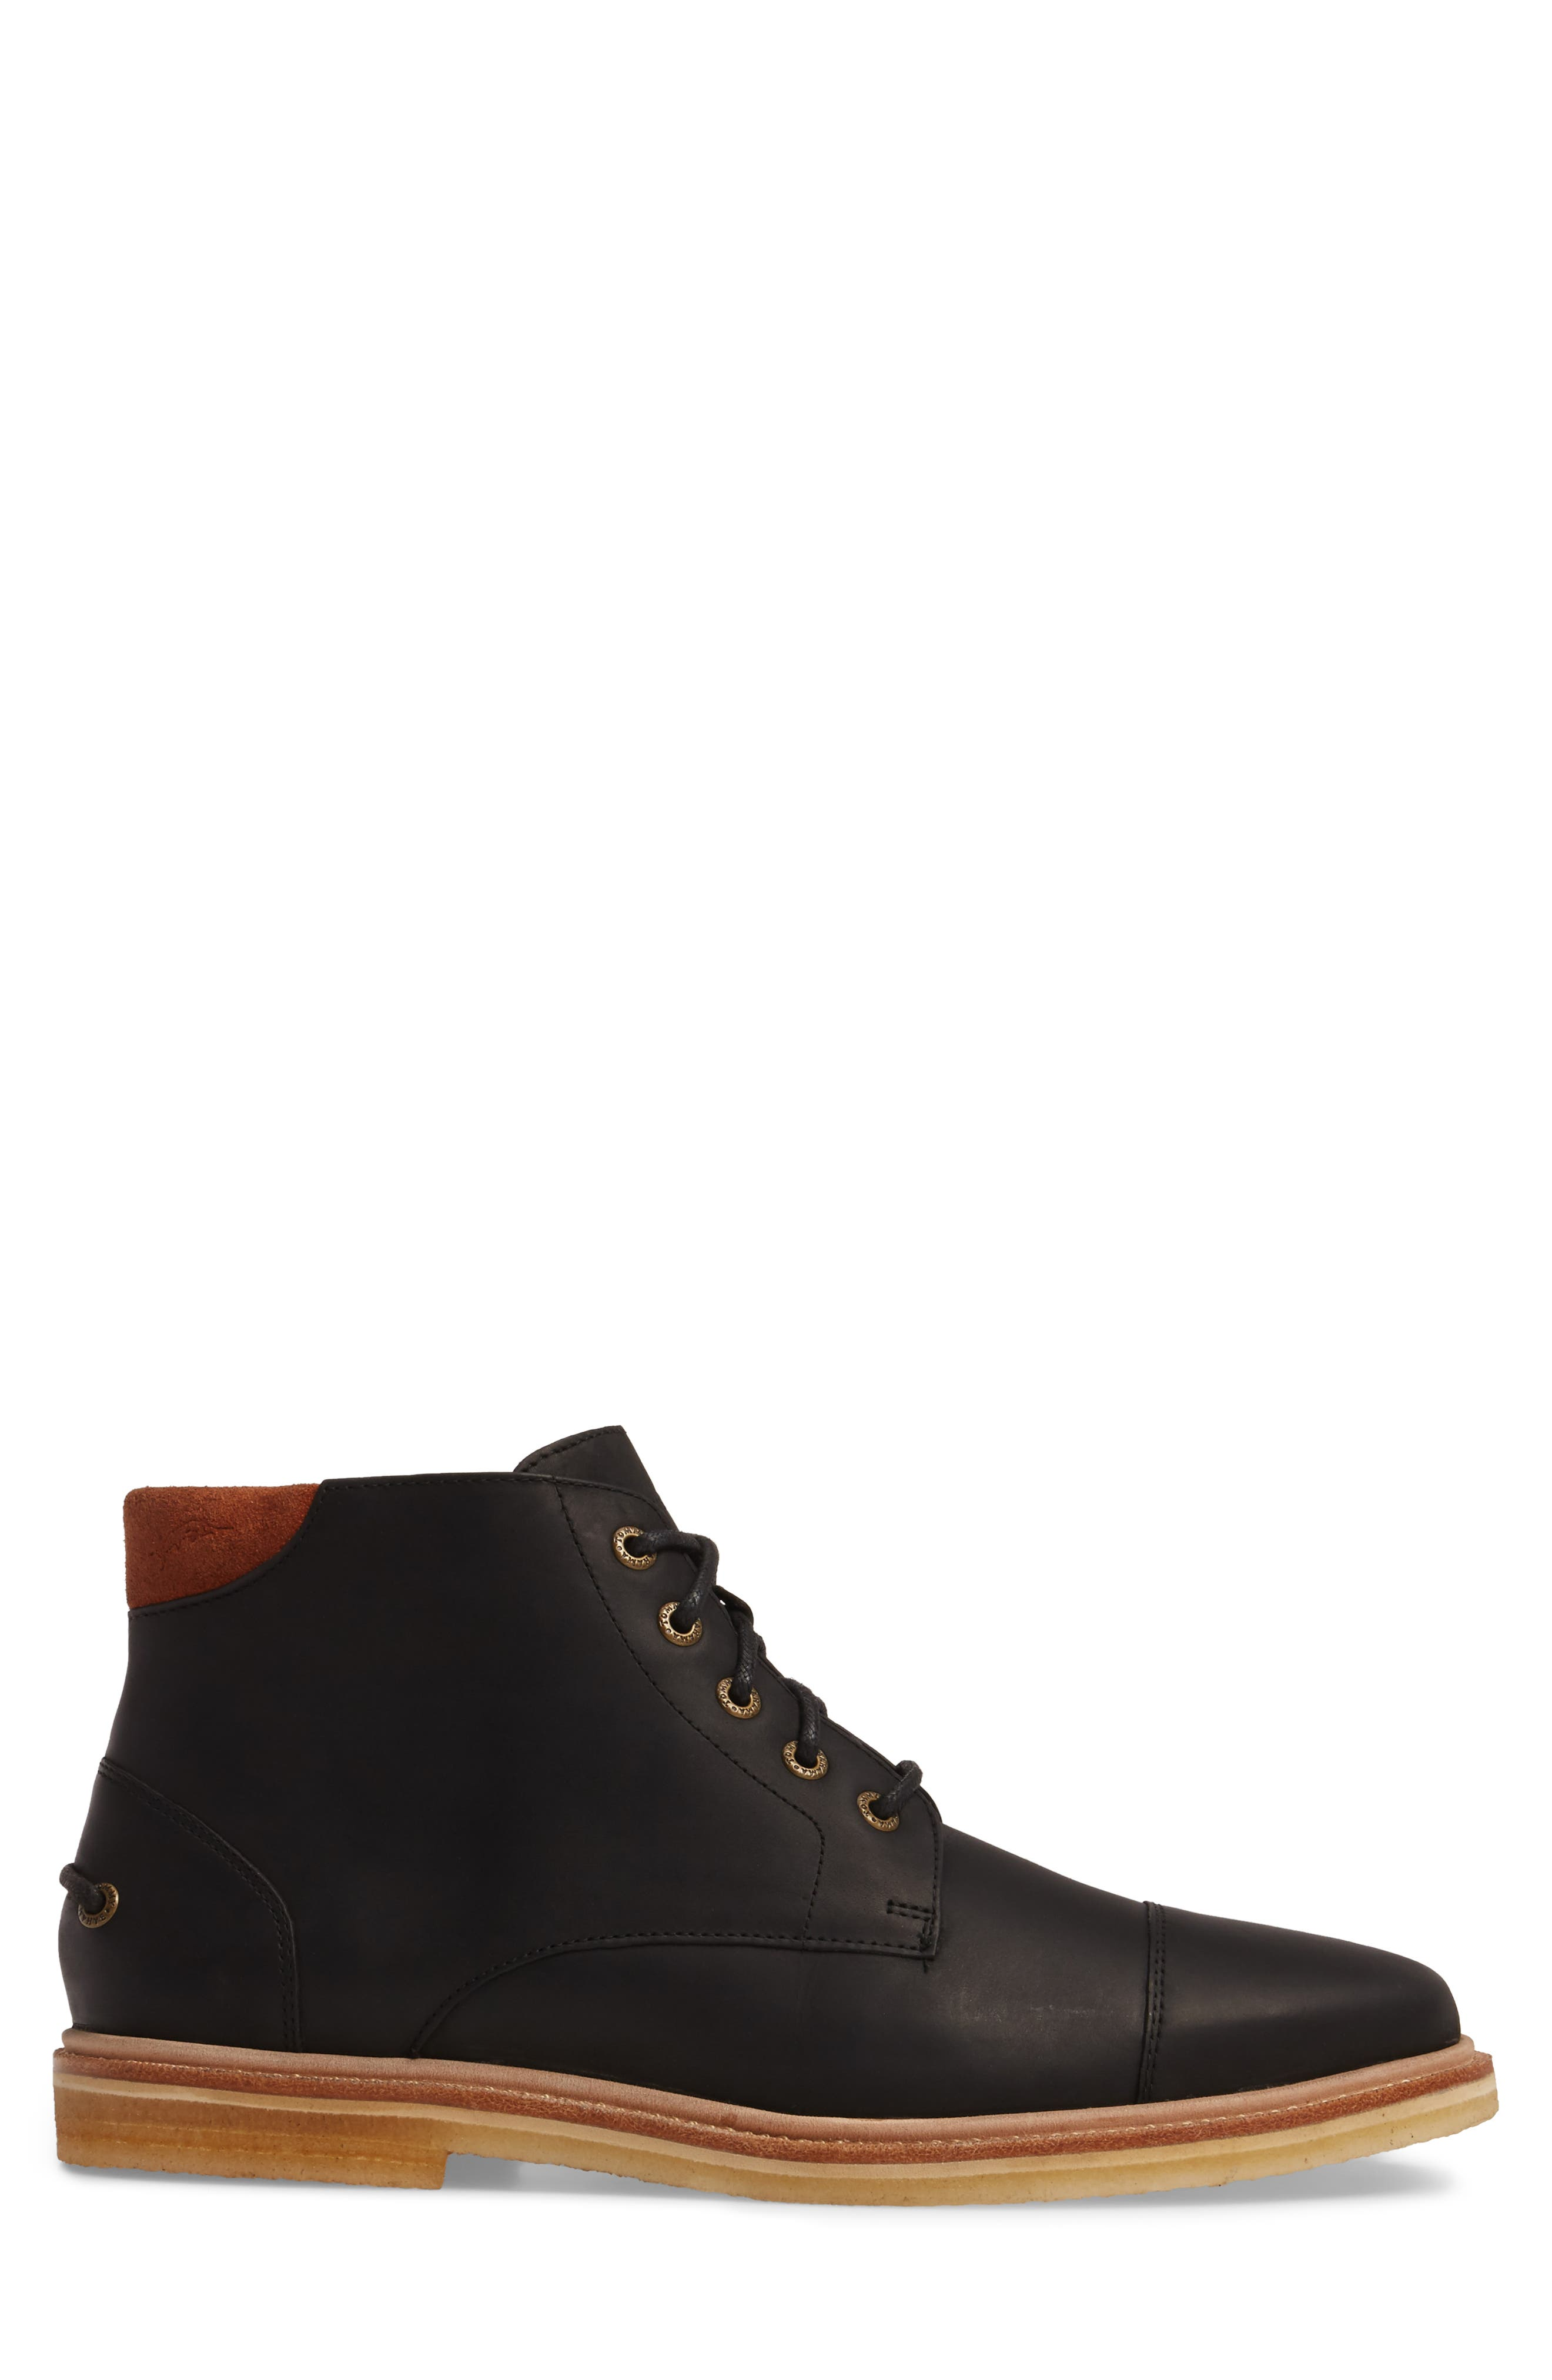 Argon Blooms Cap Toe Boot,                             Alternate thumbnail 3, color,                             001